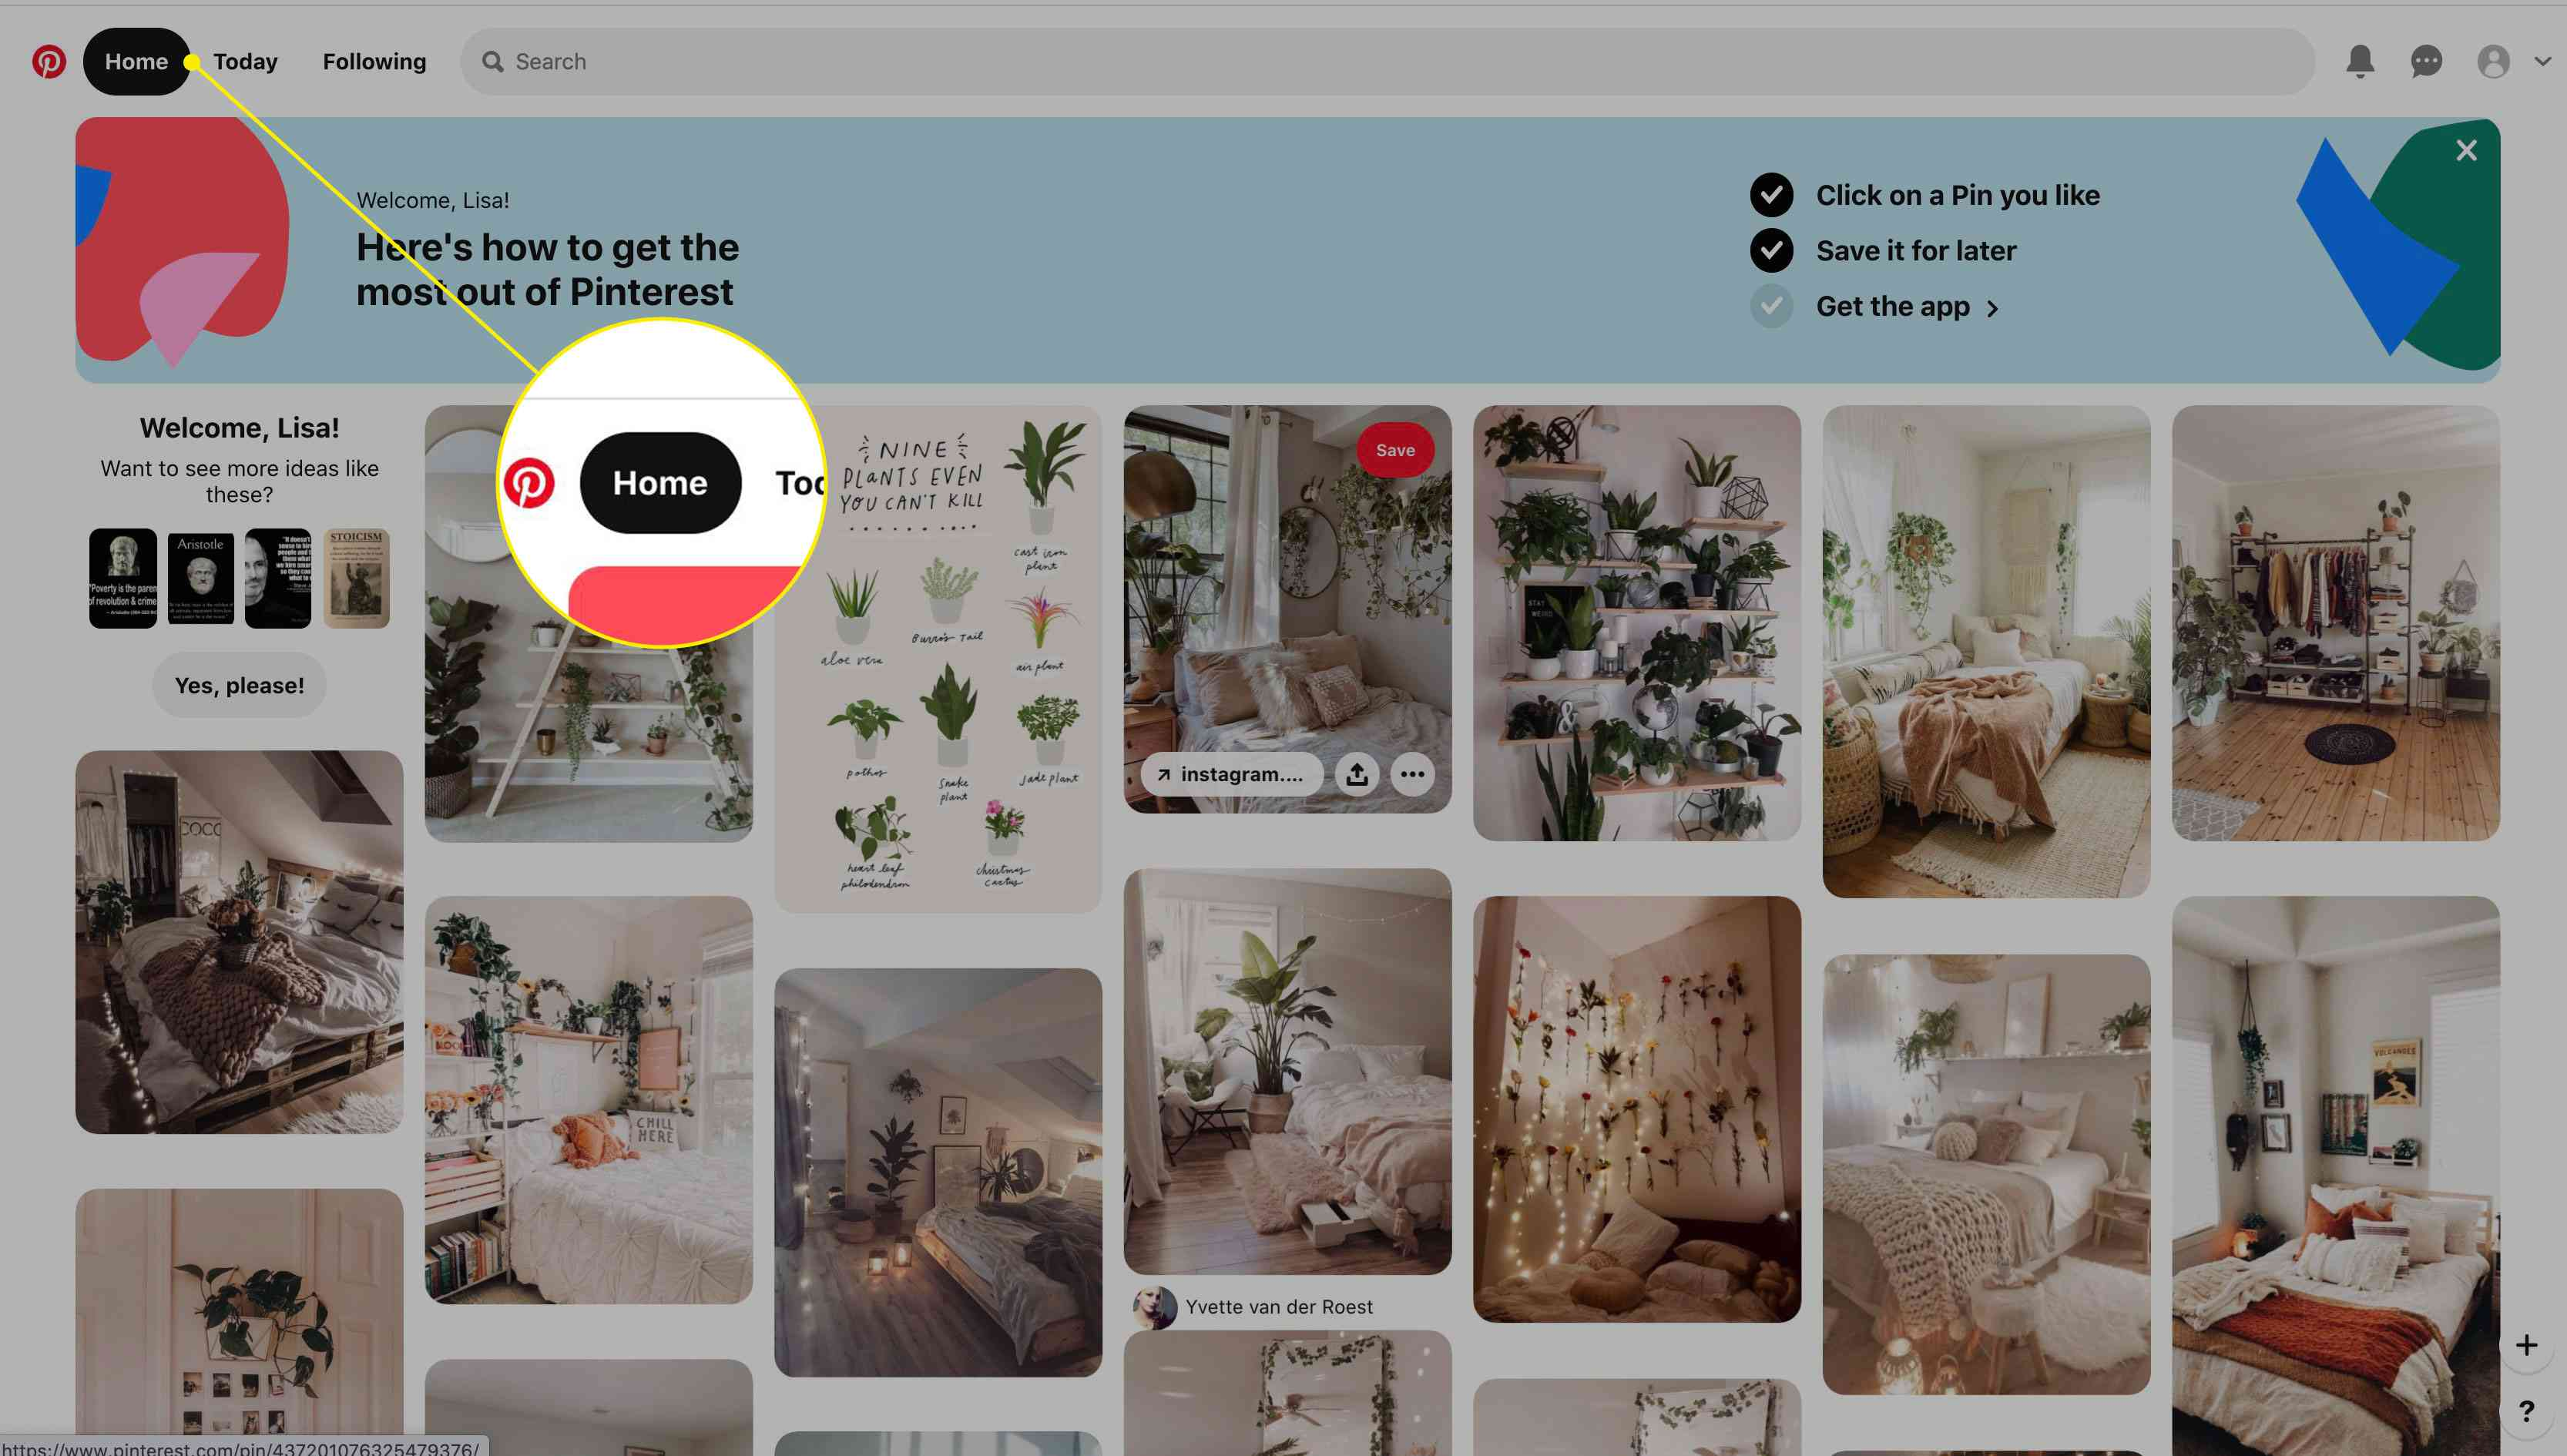 The Home tab in Pinterest